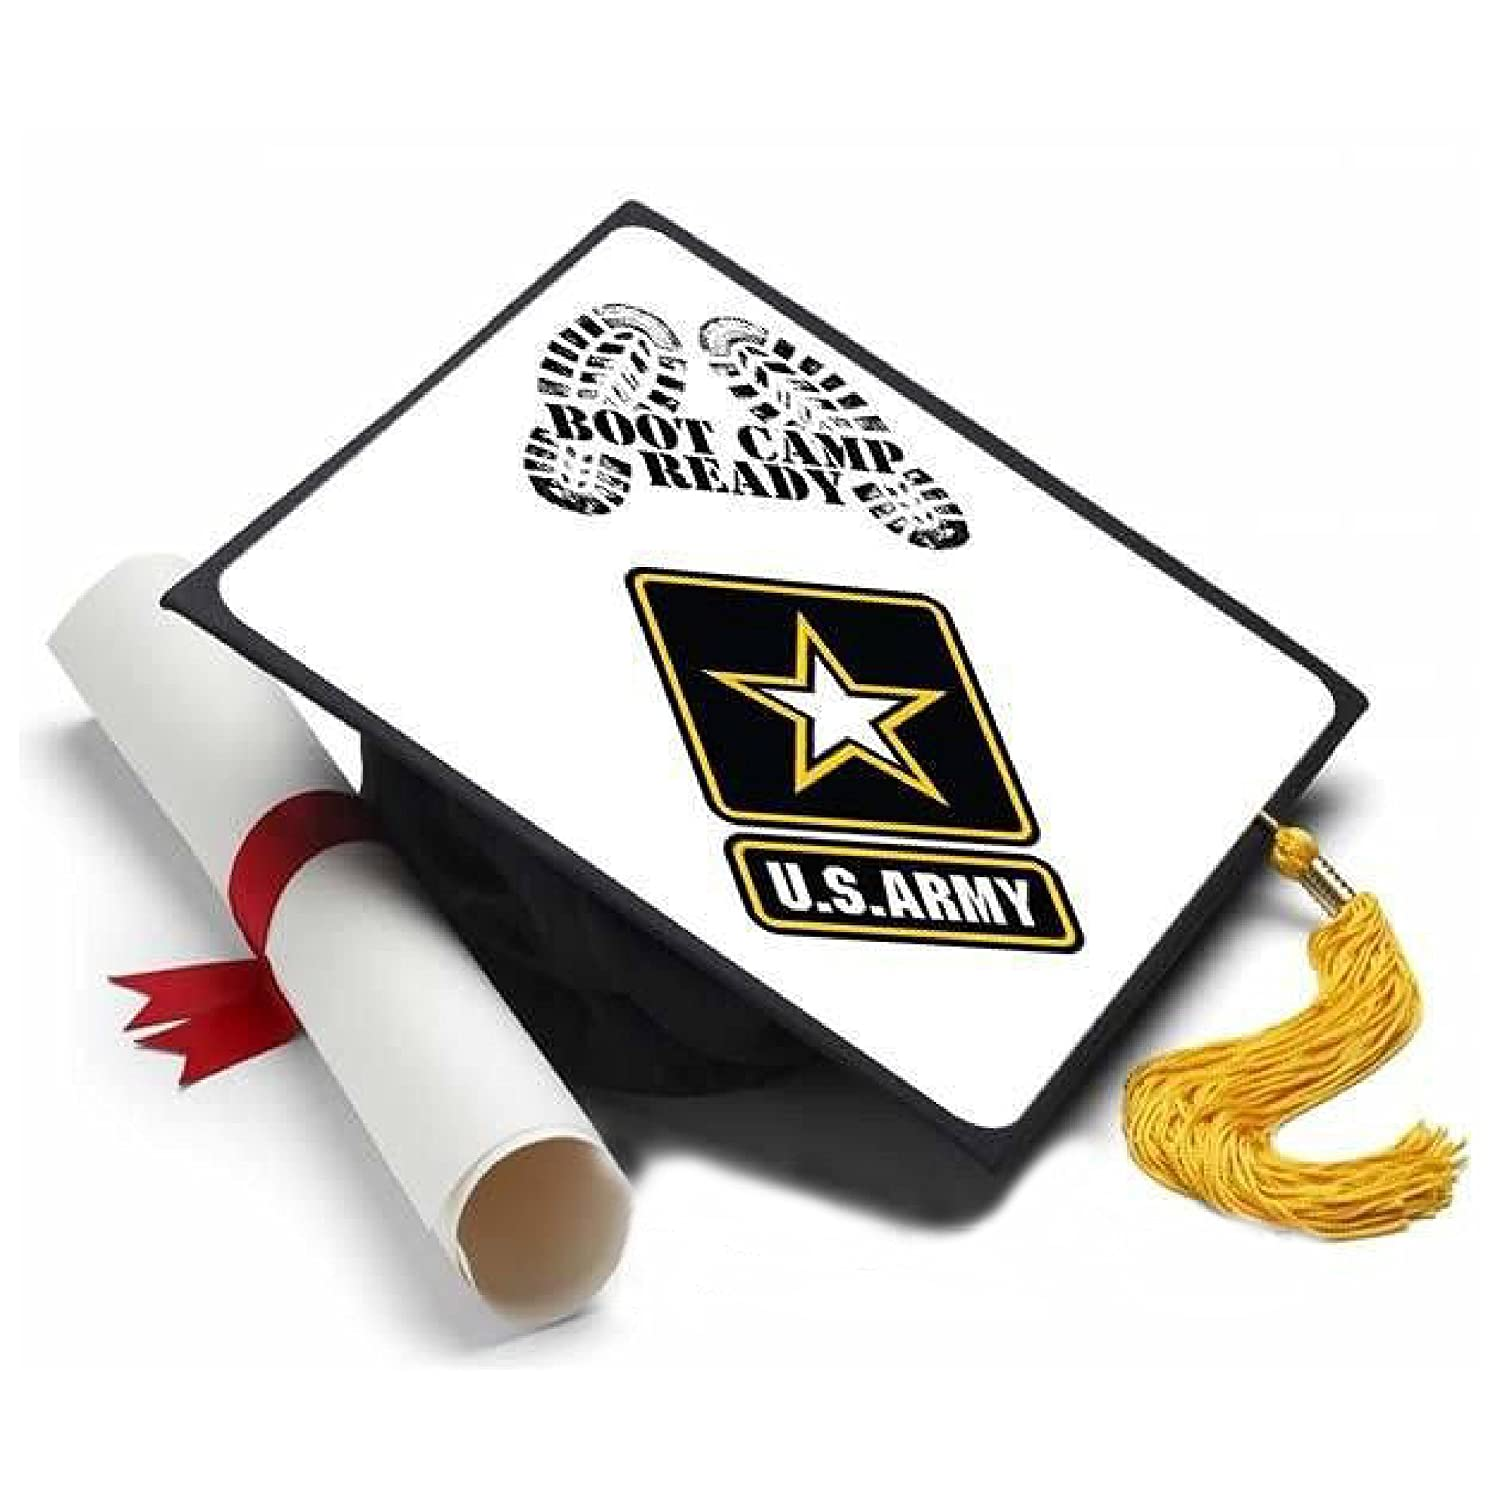 Tassel Toppers Army - Graduation Caps for Future Army Recruits - US Army Decorated Grad Caps